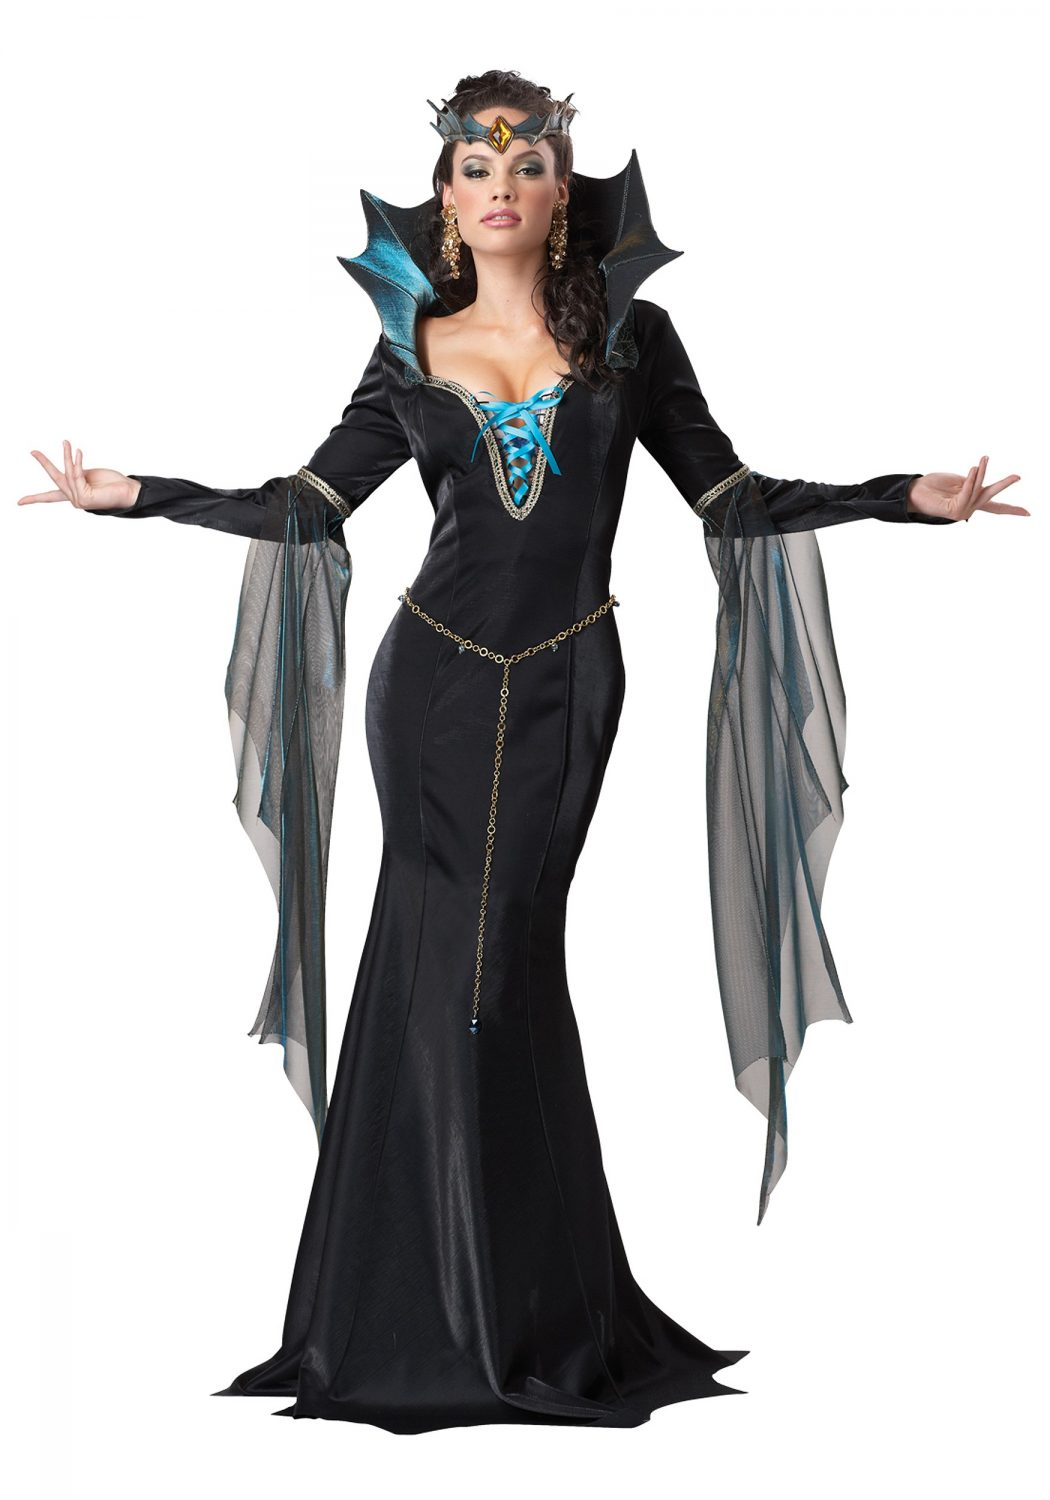 Villain2 Top 10 Teenagers Halloween Costumes Trends